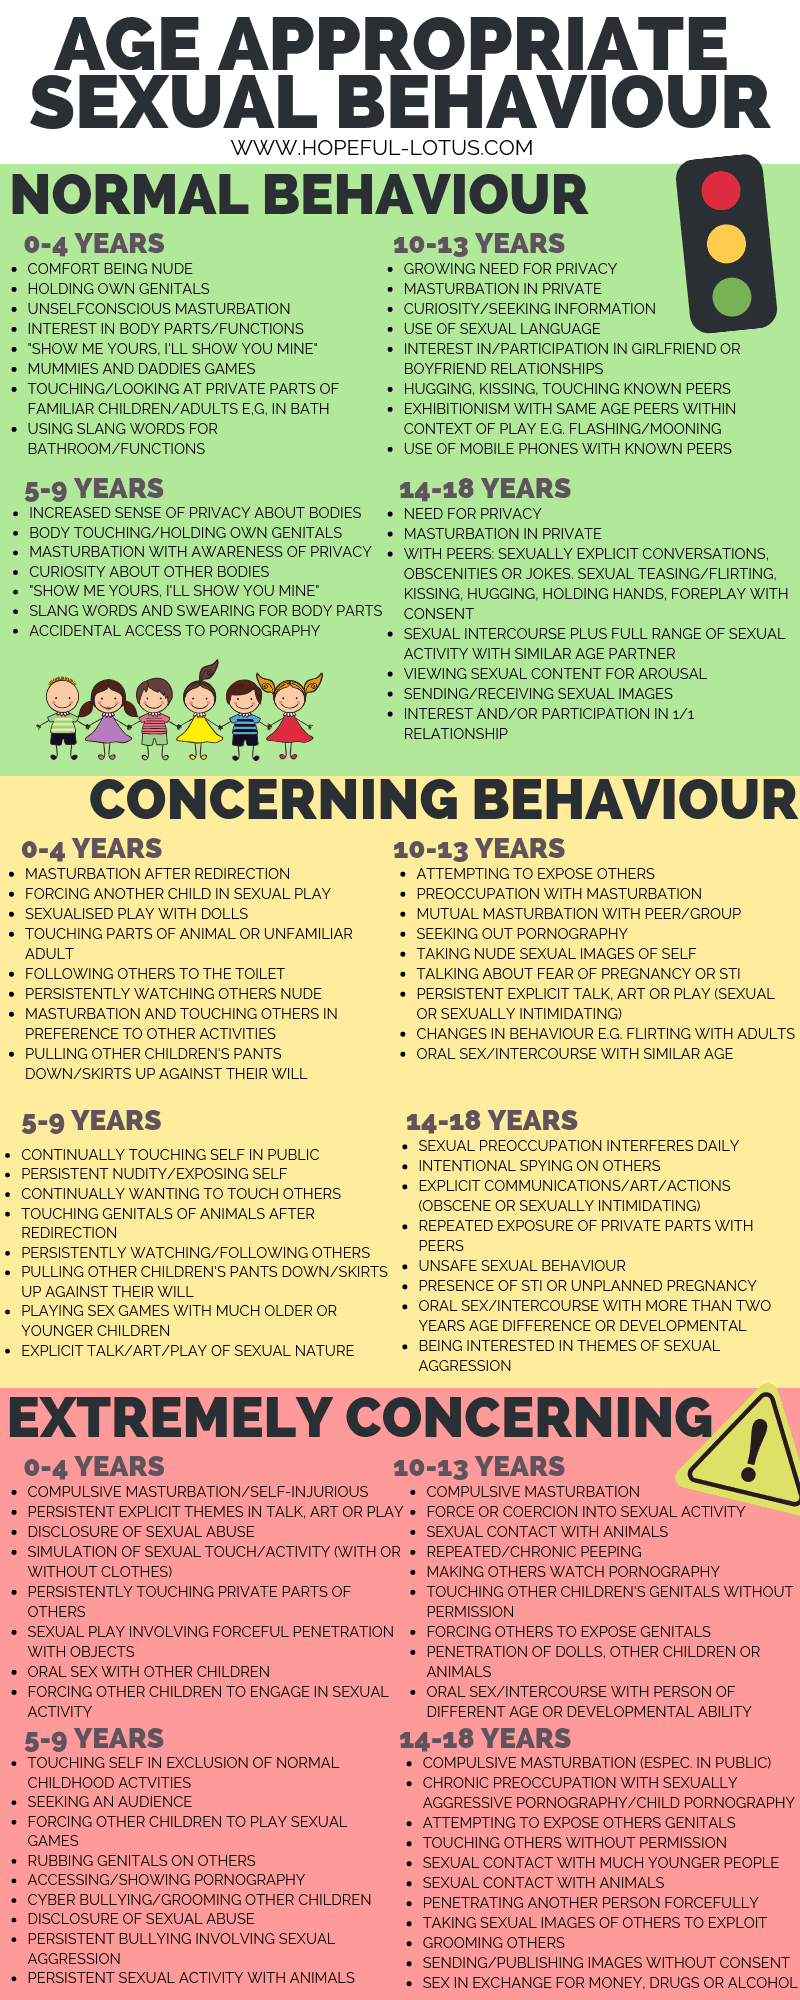 This age appropriate behaviour chart can help you identify when your child or a child you know is exhibiting inappropriate sexualised behaviour for their age. This has important implications for preventing child-on-child sexual abuse and understanding if your child has been the victim of abuse themselves. Pin this sexual behaviour traffic light chart for later so you always have it at hand!